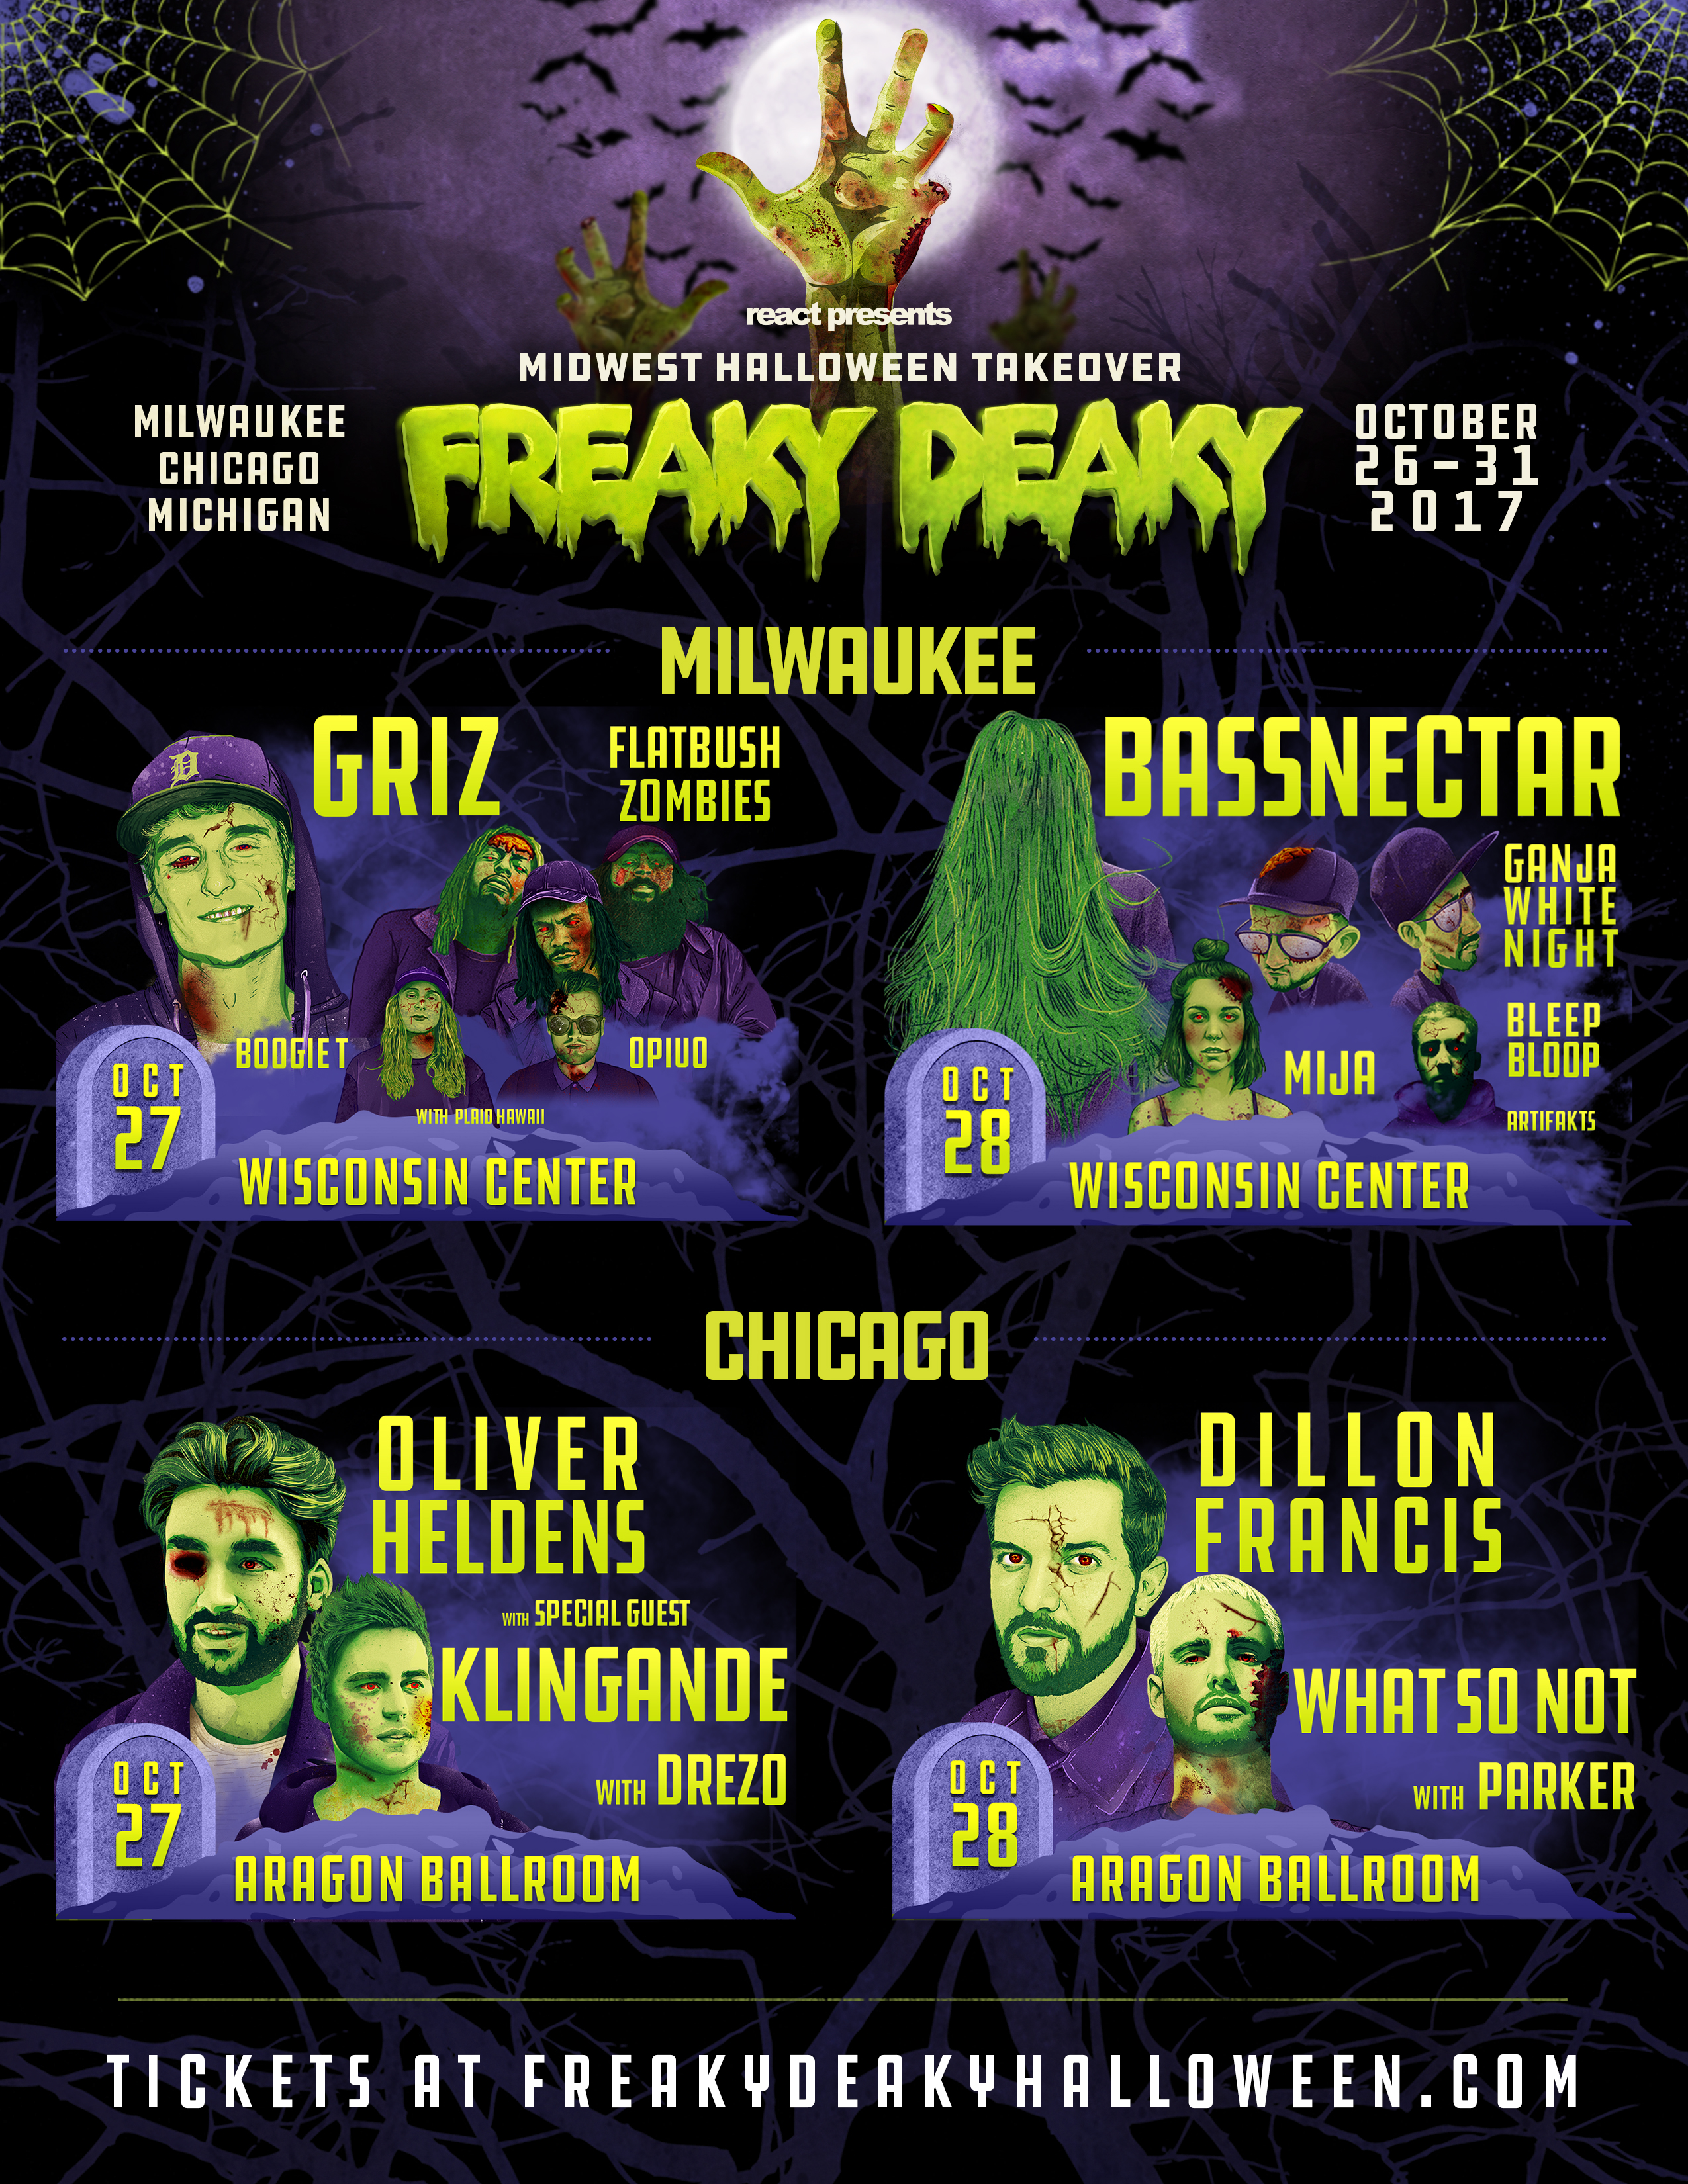 still available on the freaky deaky website if you want to see the full list of freaky deaky events happening across the midwest than you can check out